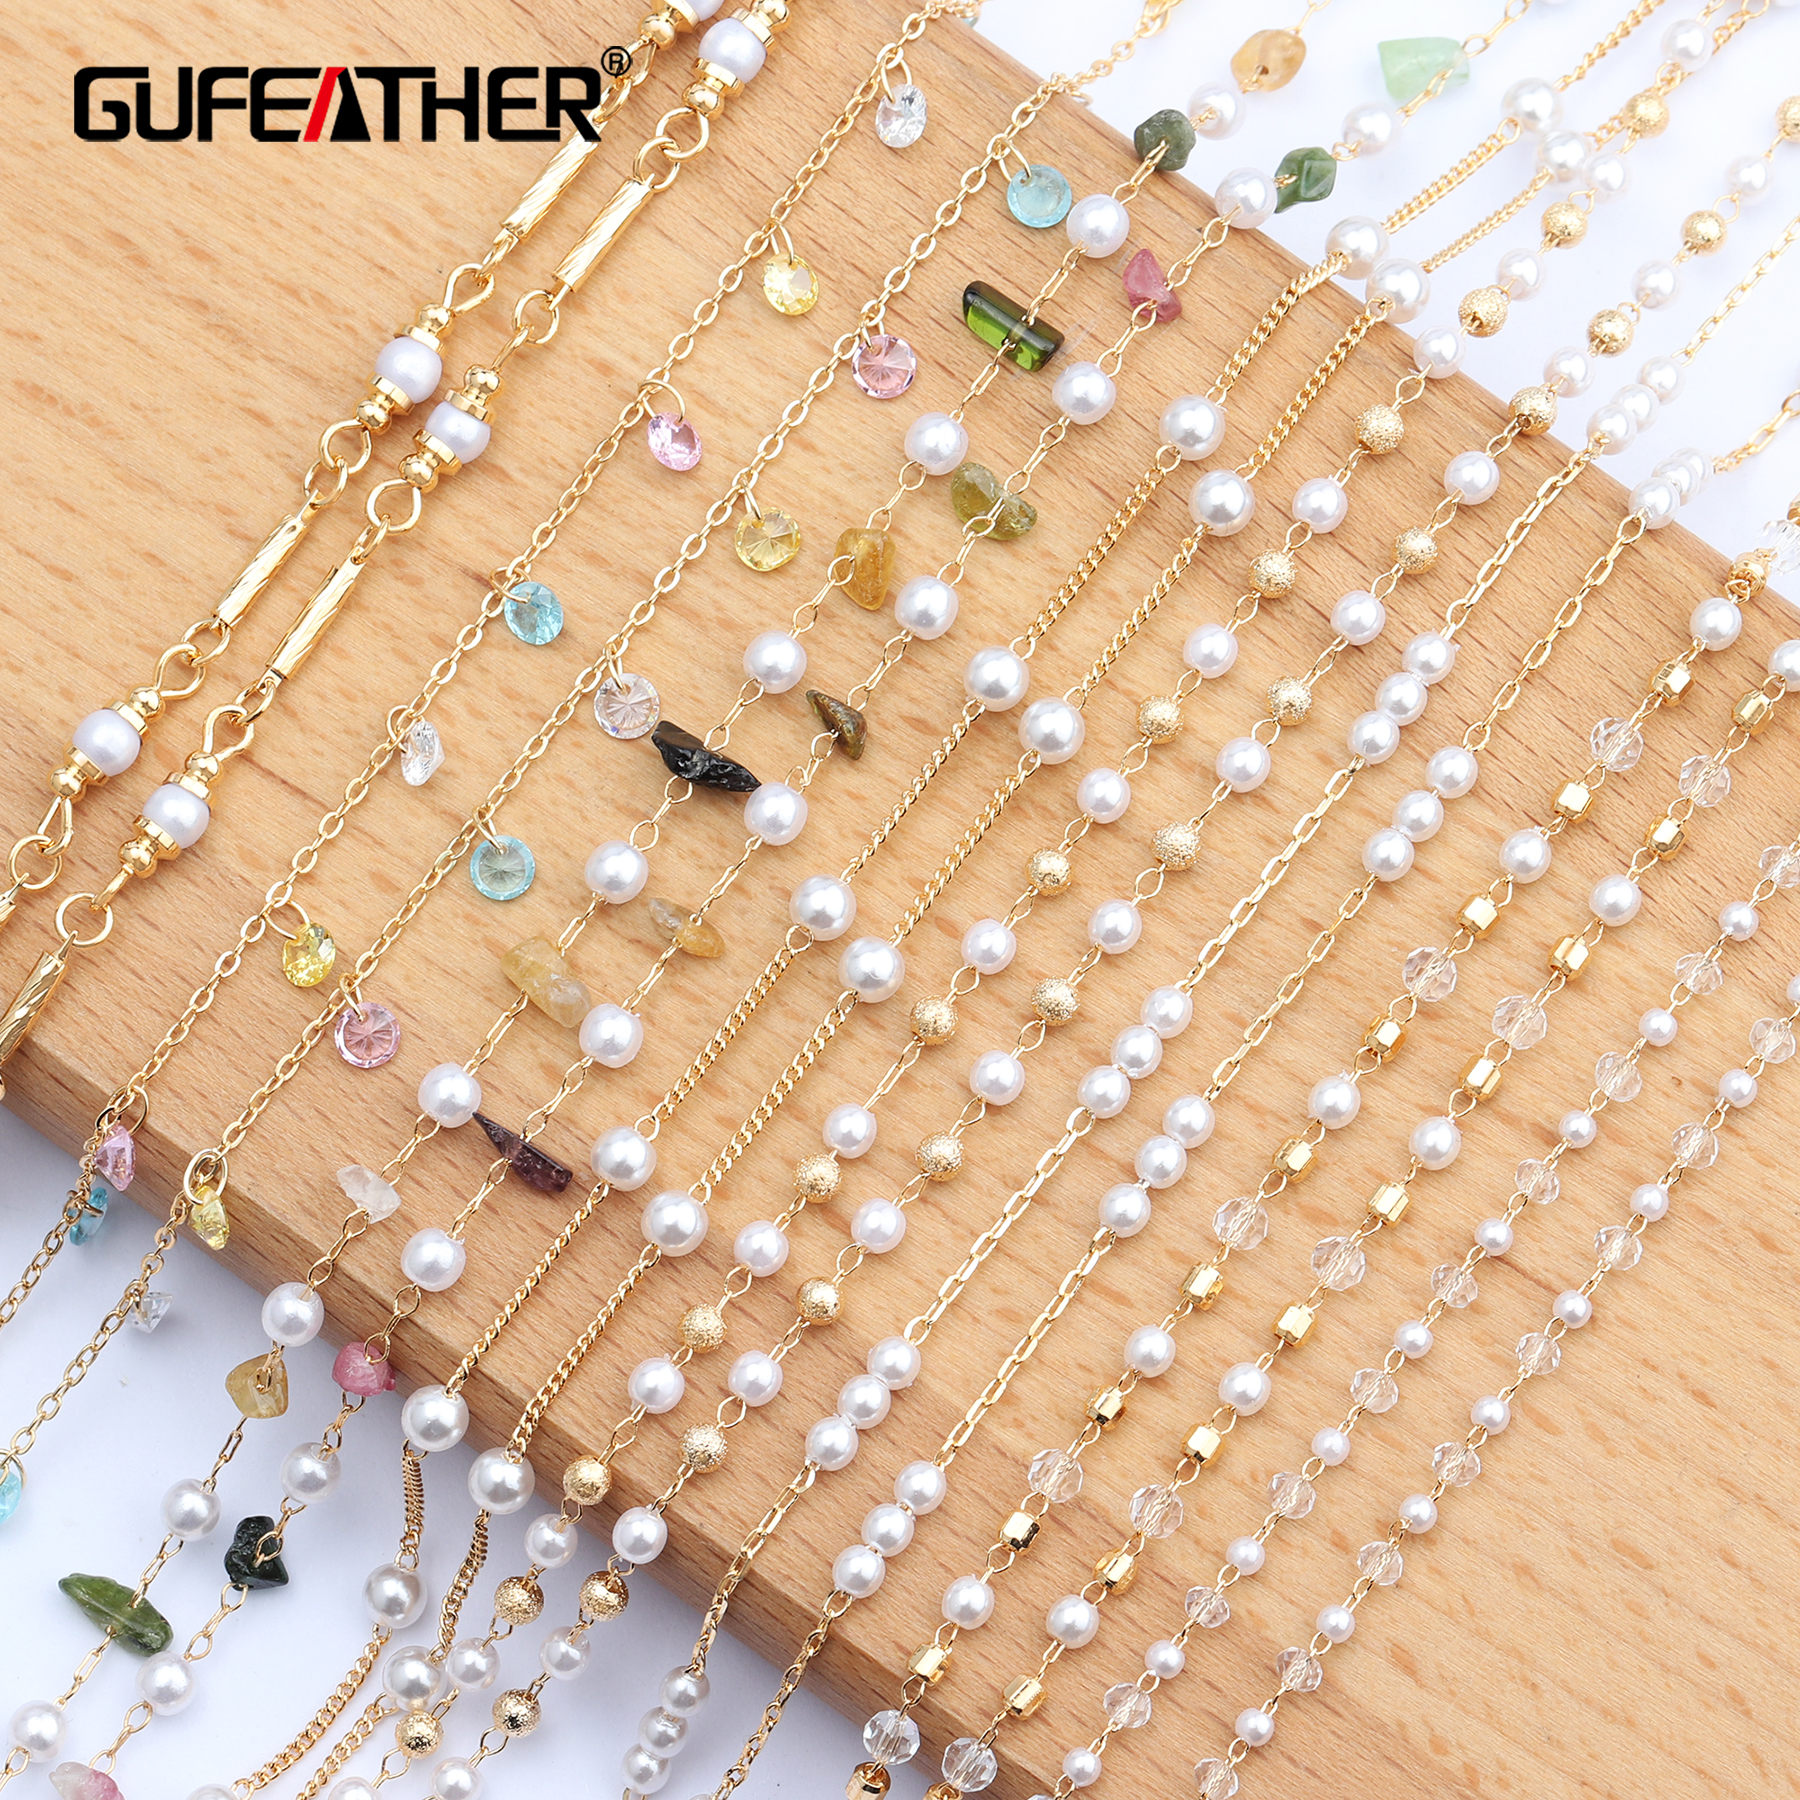 Jewelry-Accessories Necklace Copper-Chain-Beads Diy Chain Natural-Stone C63 Gold-Plated title=